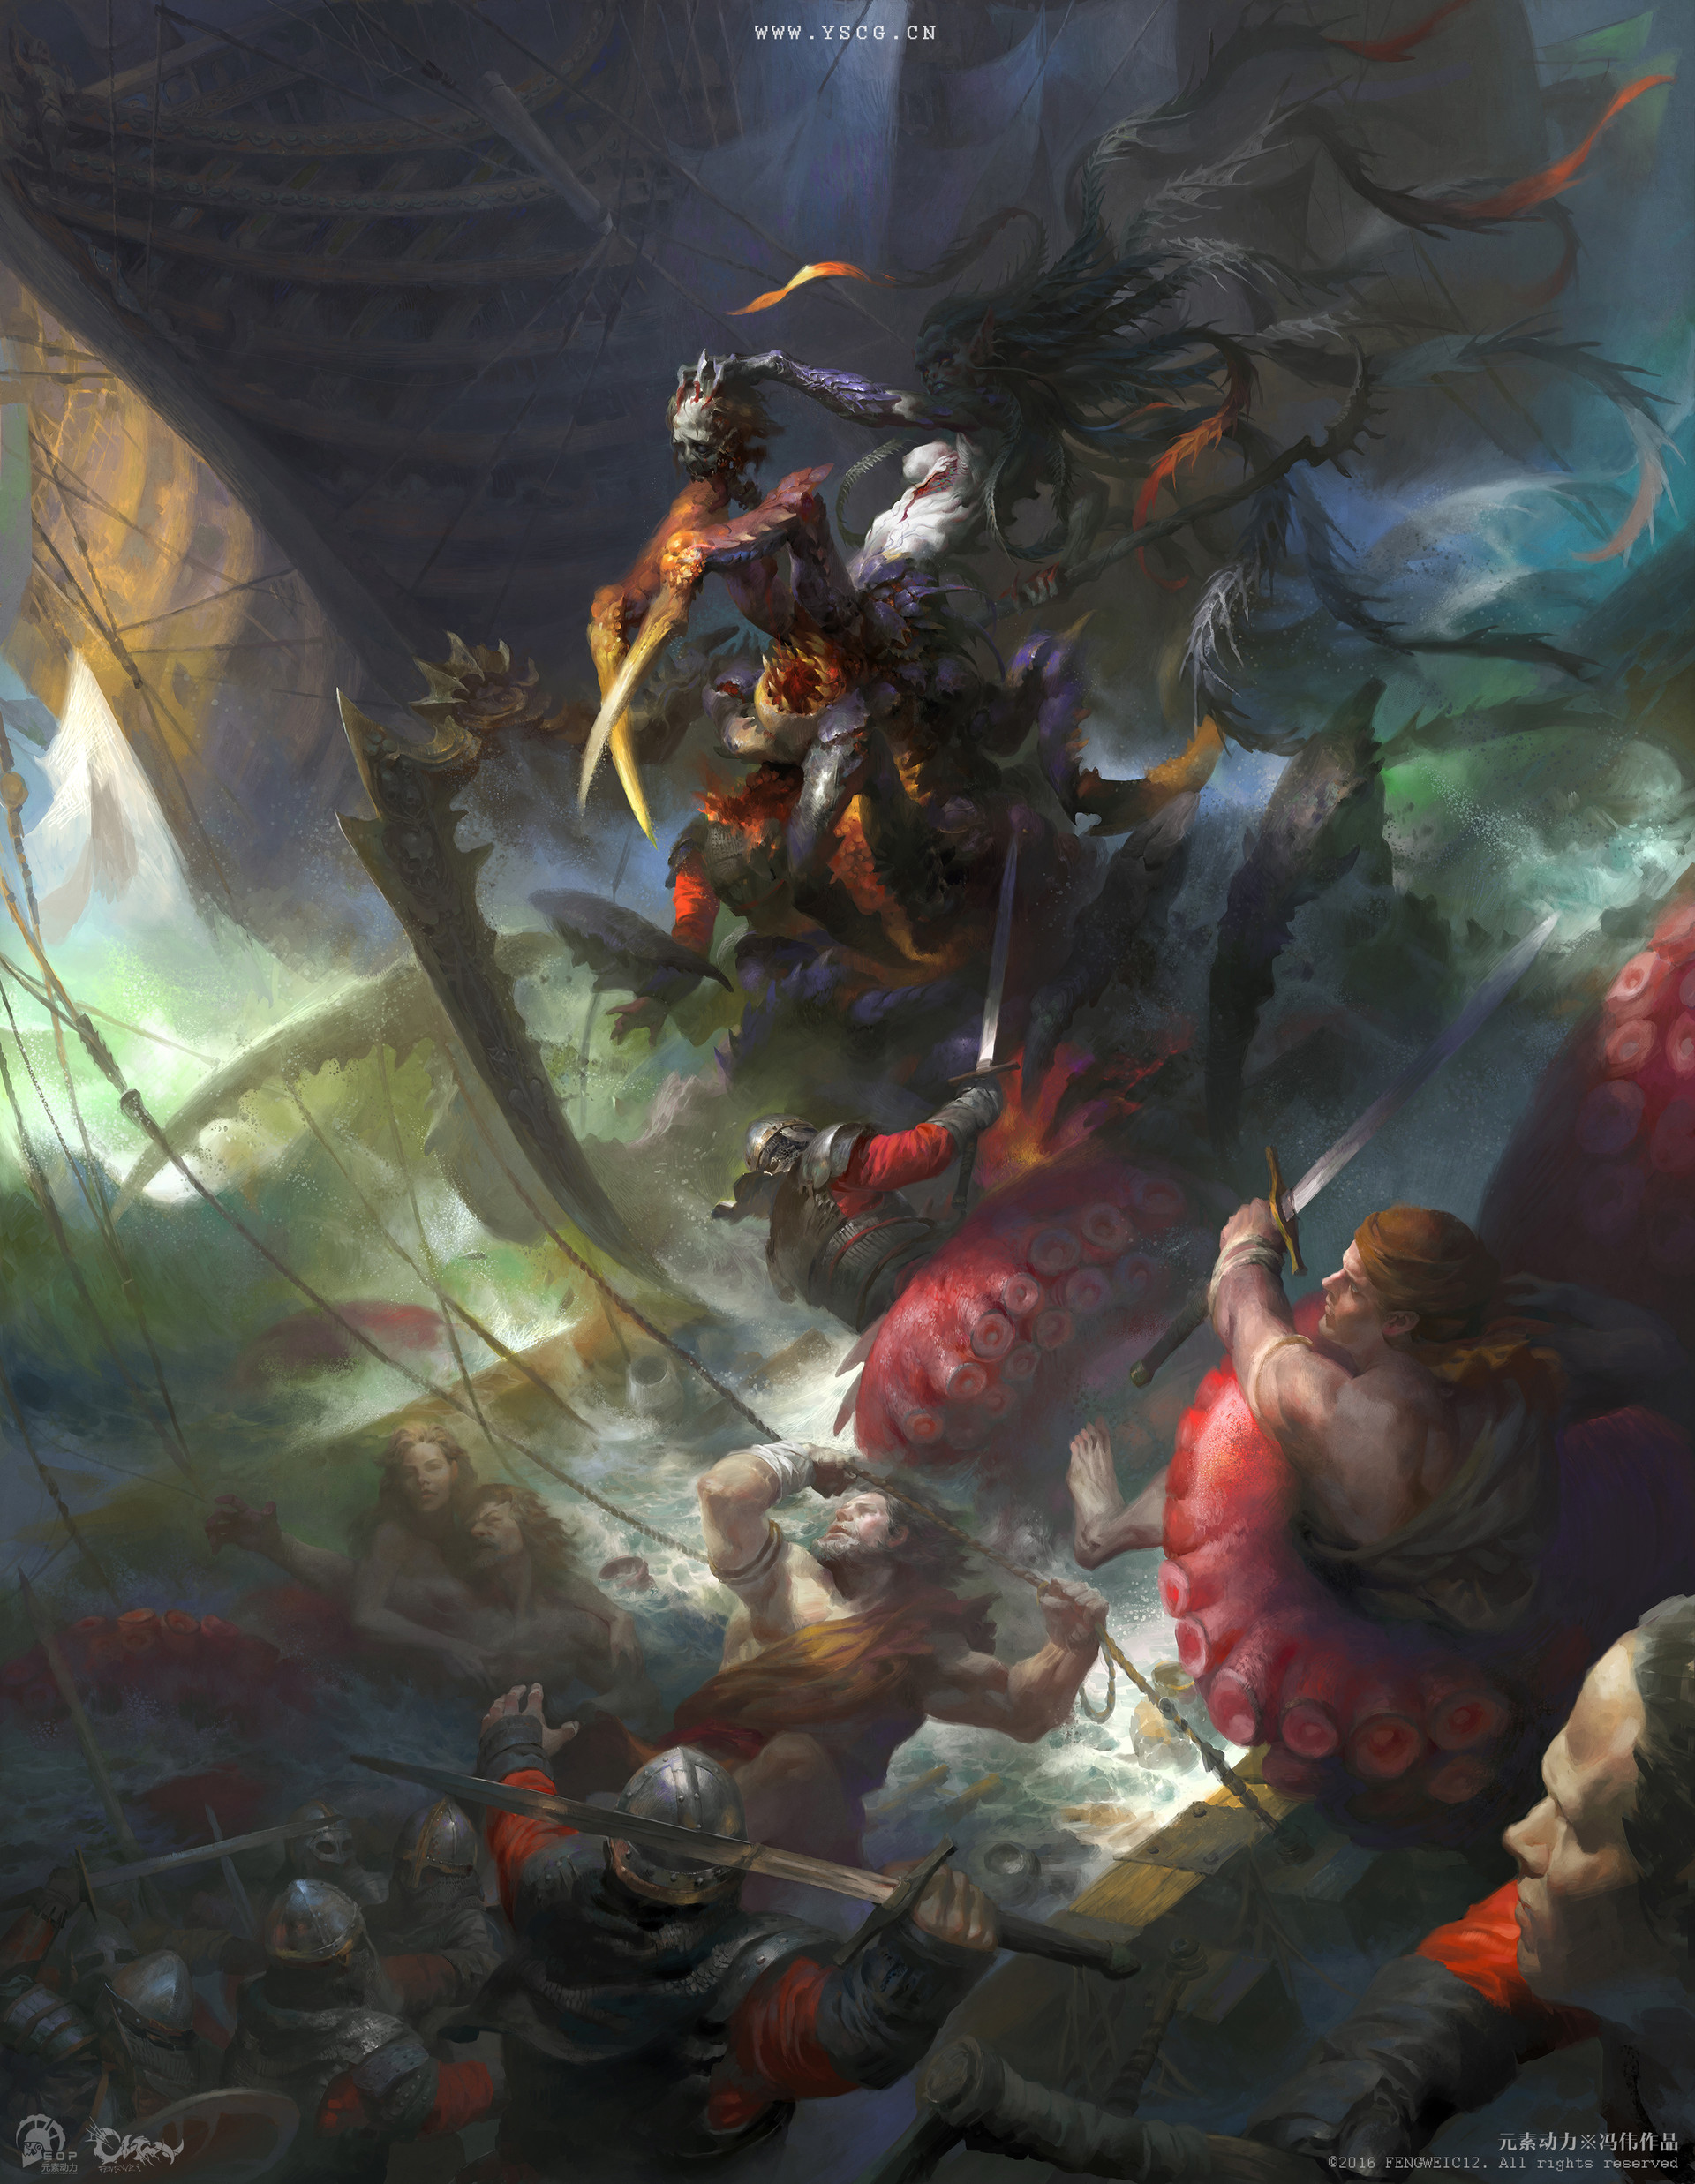 Wei Feng Digital Painting Illustration Mermaid creature attack sea boat knight